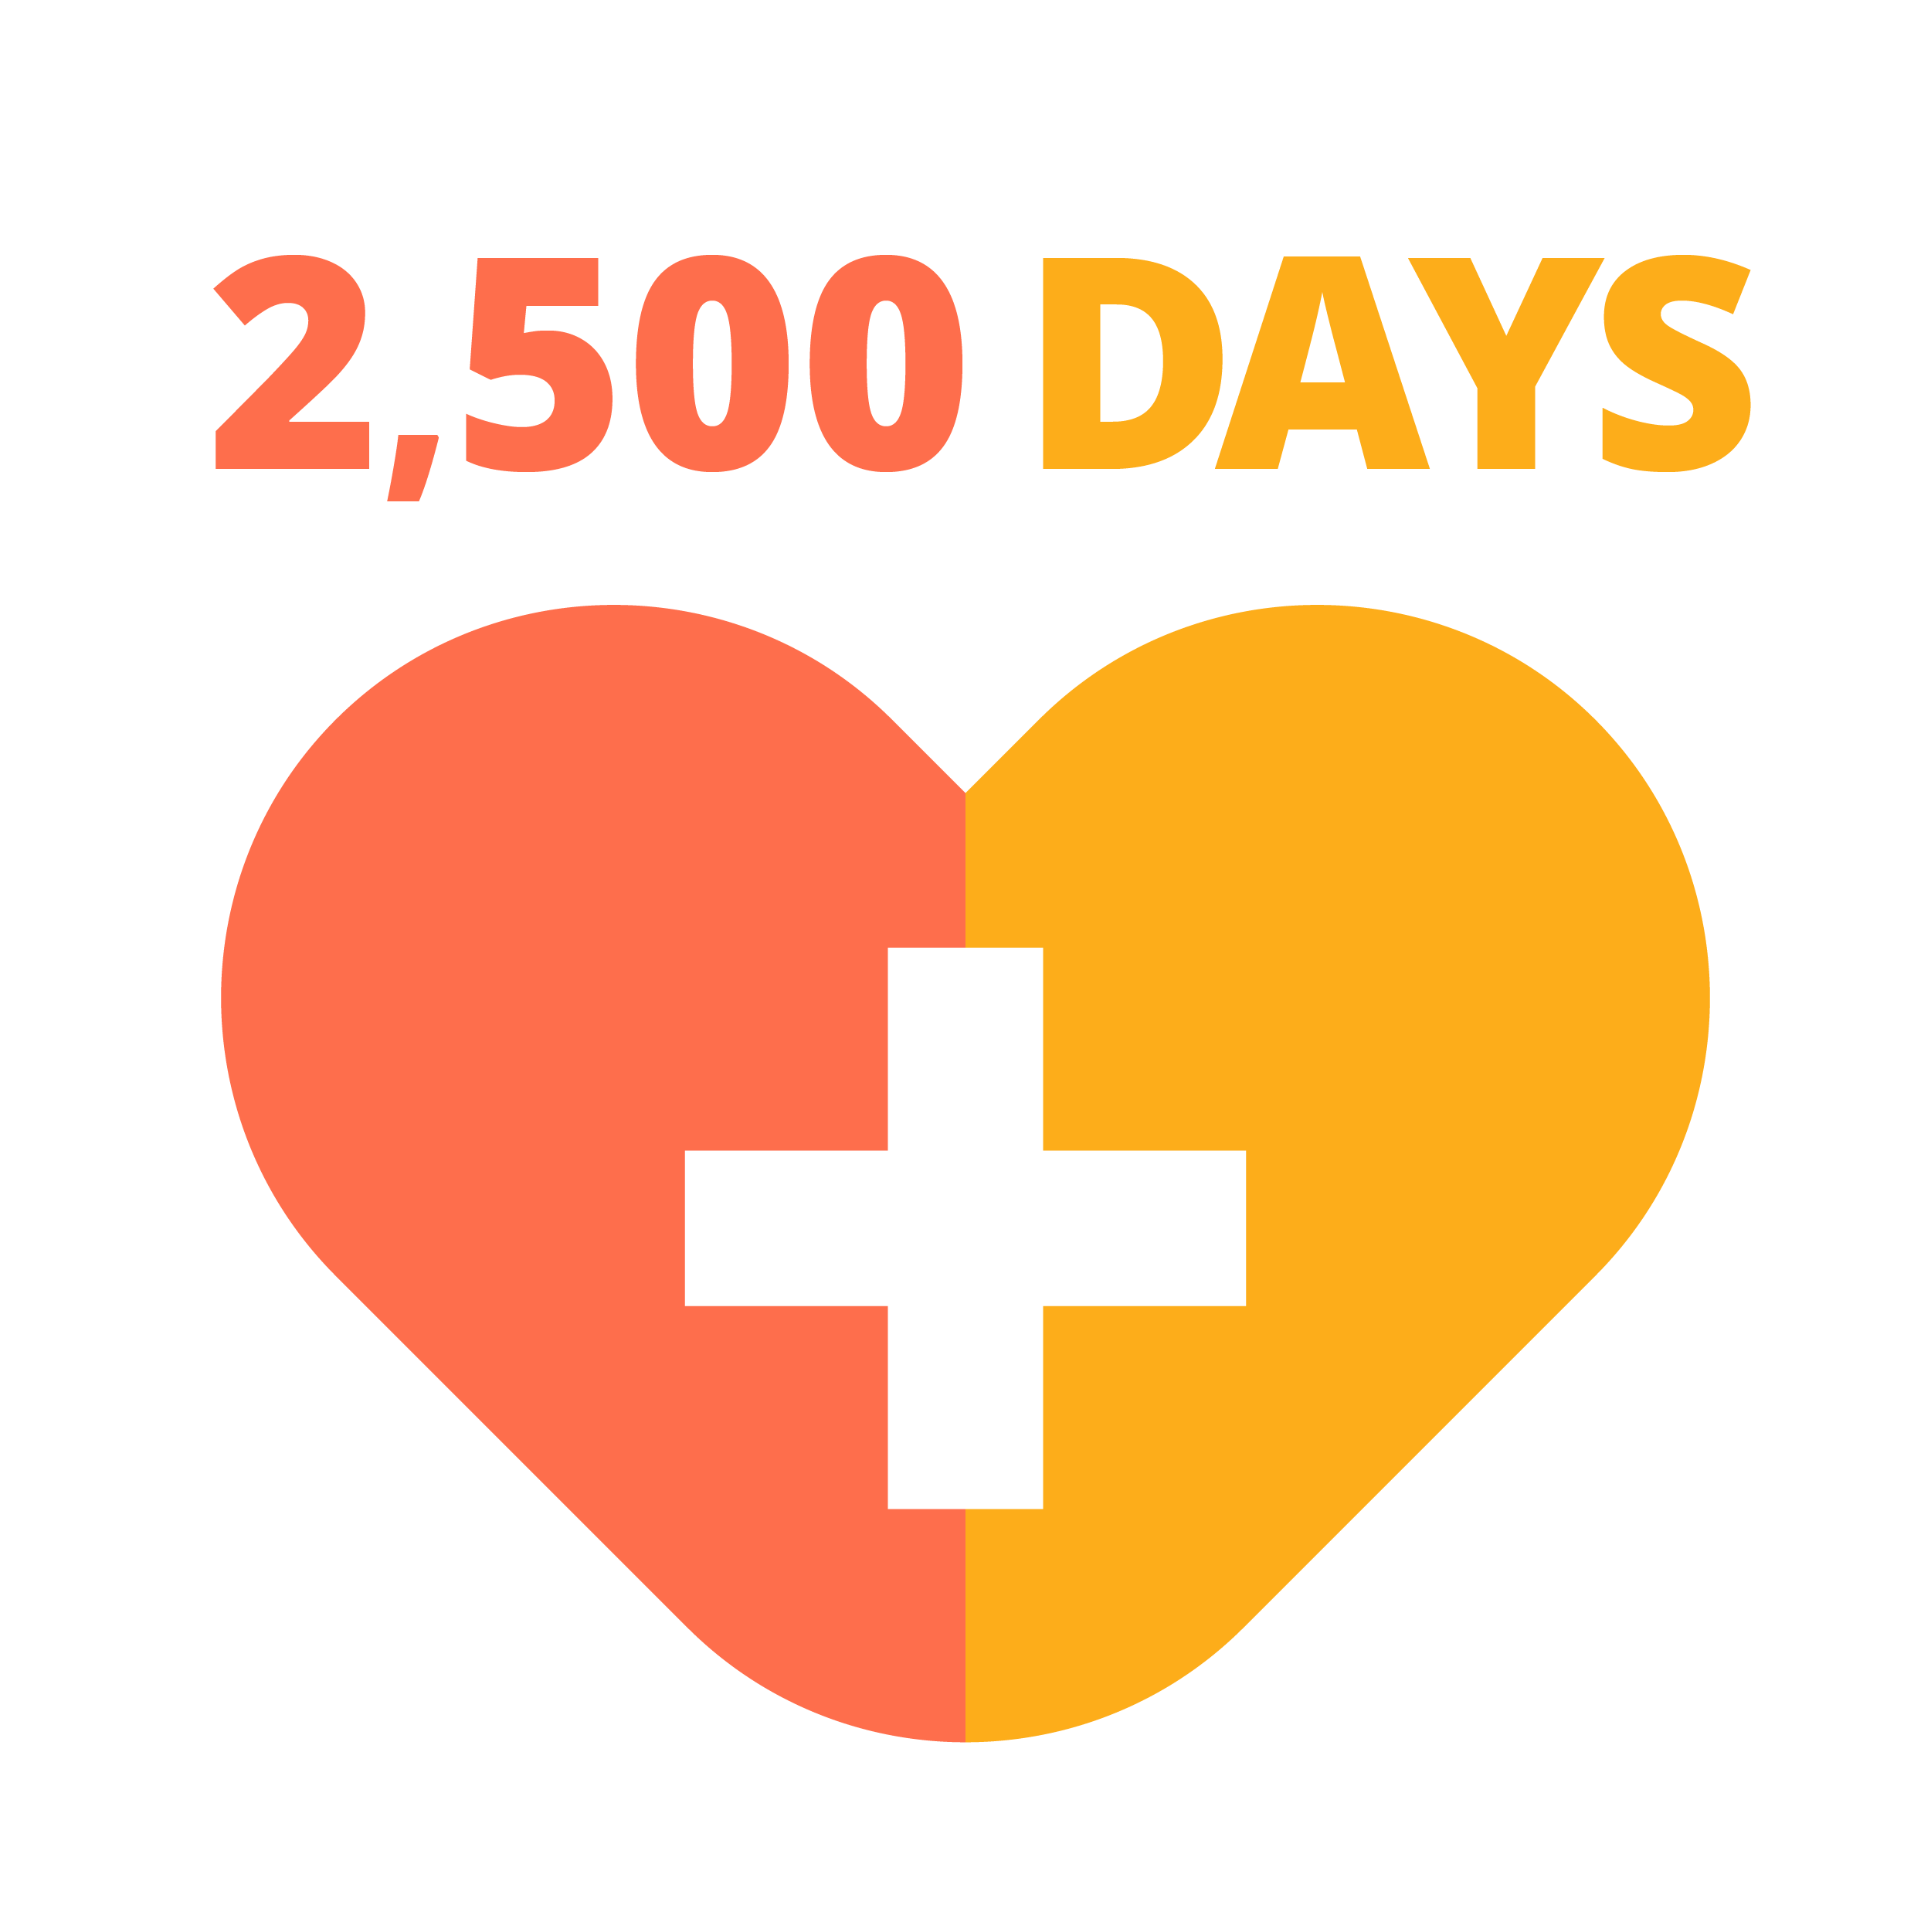 Heart with 2500 days